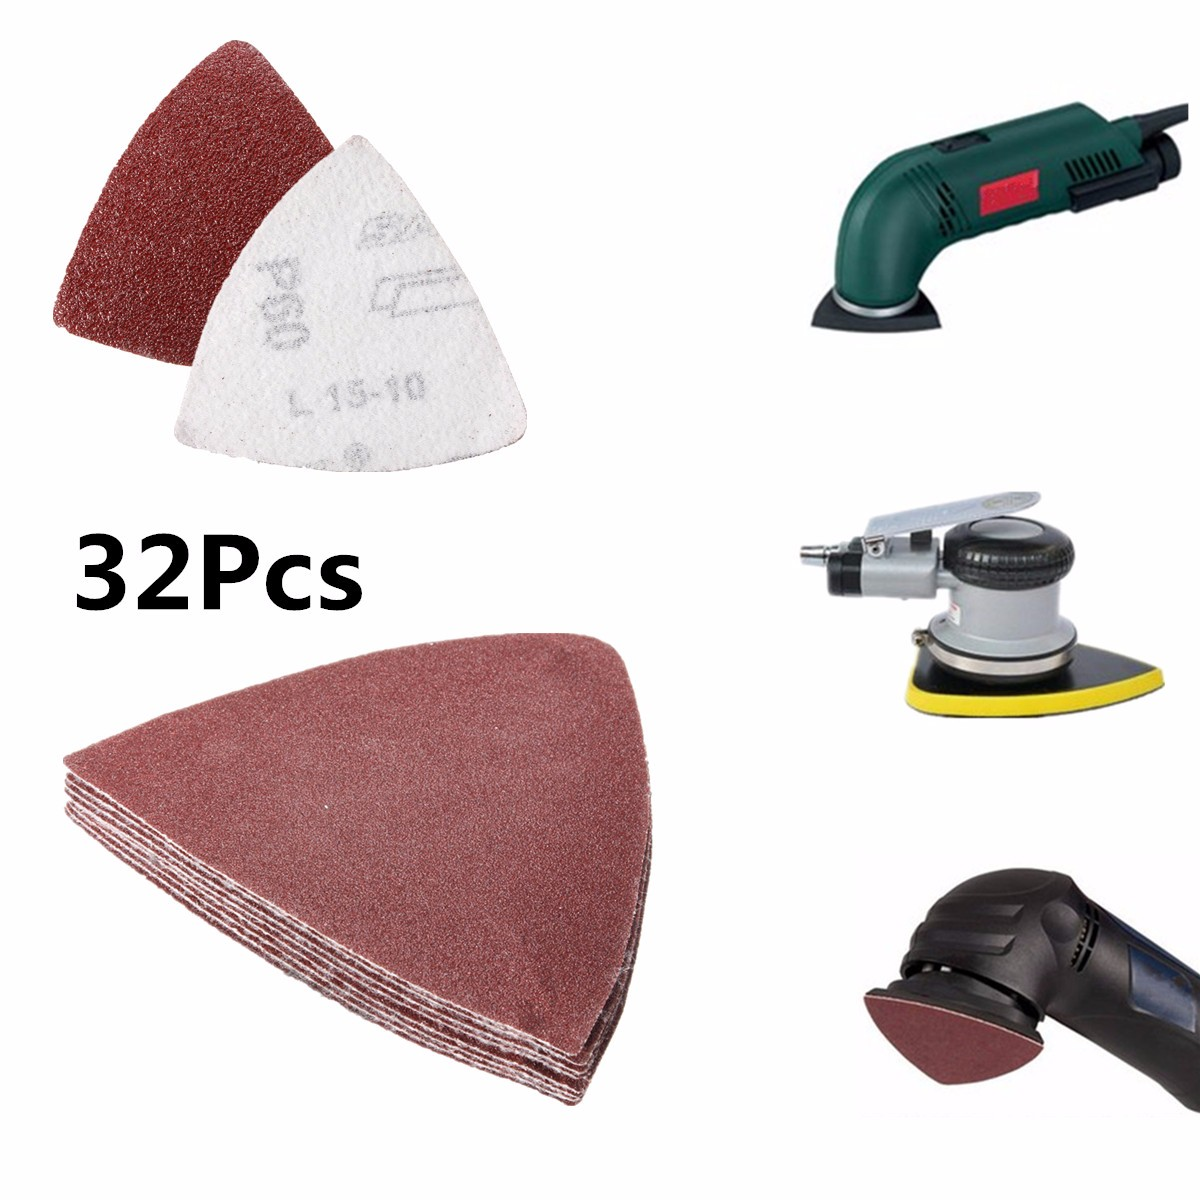 32Pcs 80mm Hook And Loop Delta Sand Paper Sanding Sheet For Oscillating Multi-Tools 60 120 180 240 Grit